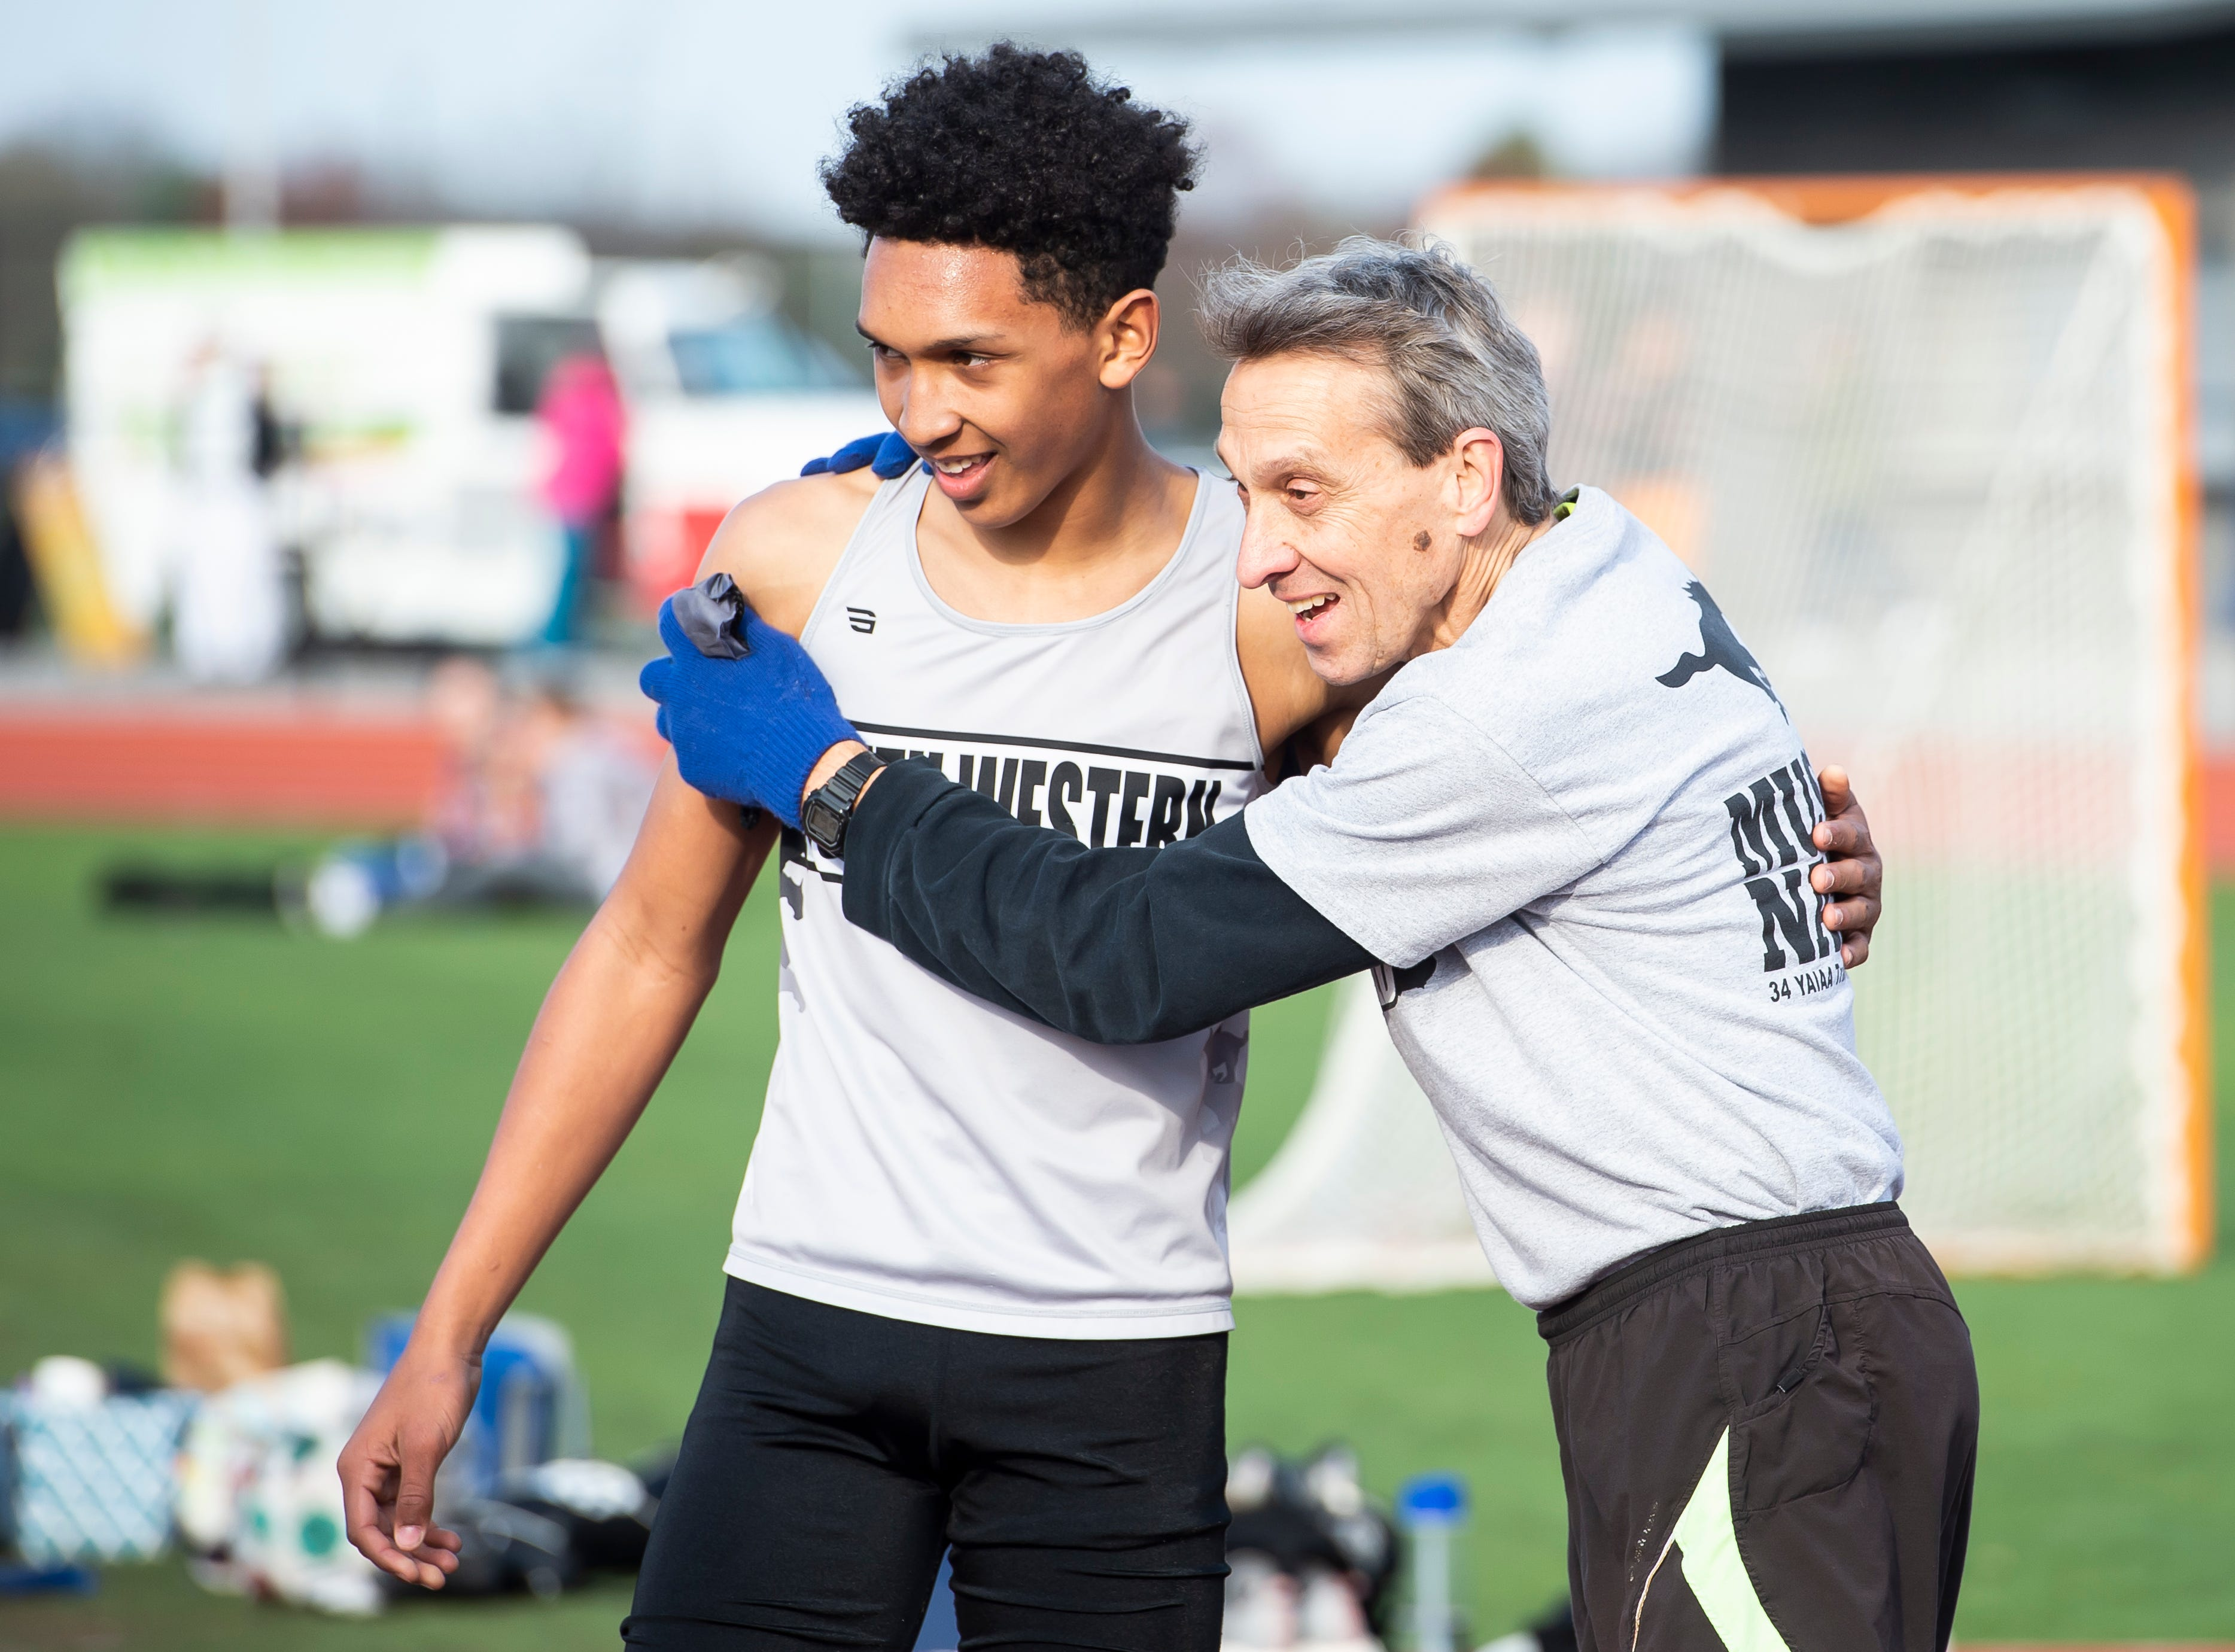 South Western' Shilo Bivins gets a hug from coach Pete Dodd after placing third in the 800m during a track and field meet against Spring Grove on Thursday, April 11, 2019.